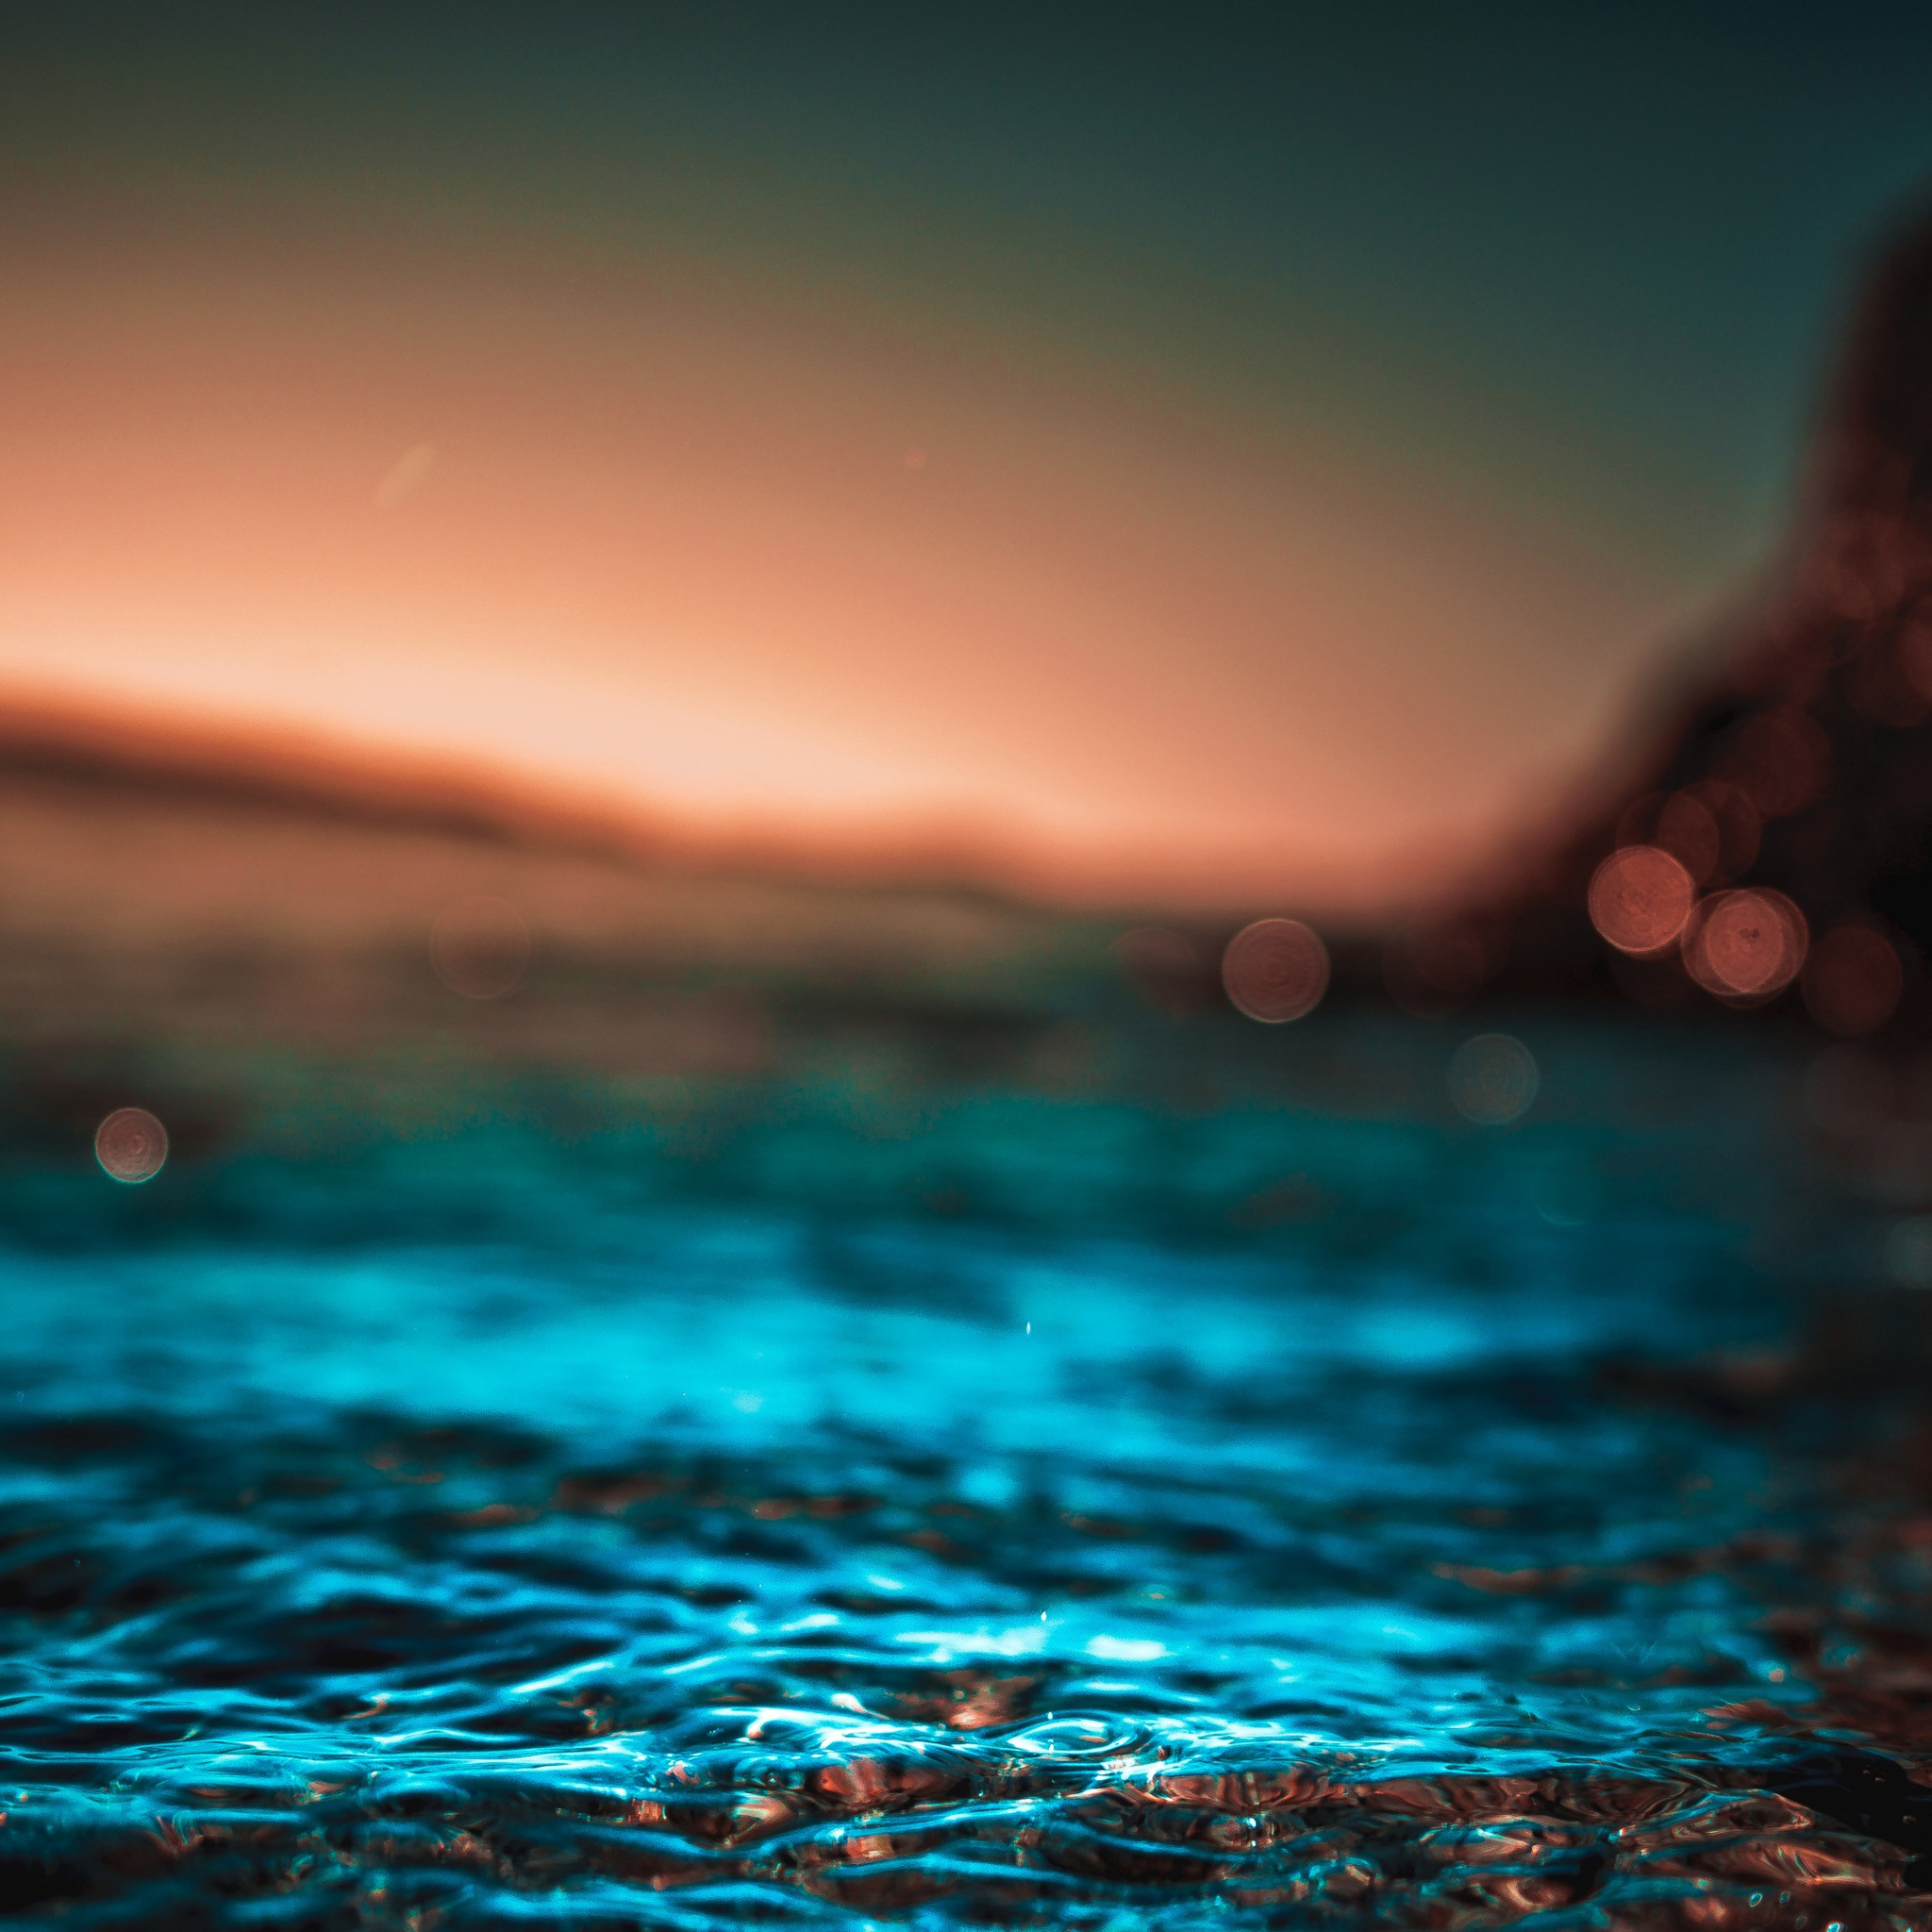 dawn depth of field dusk ocean sea sunrise sunset water 4k